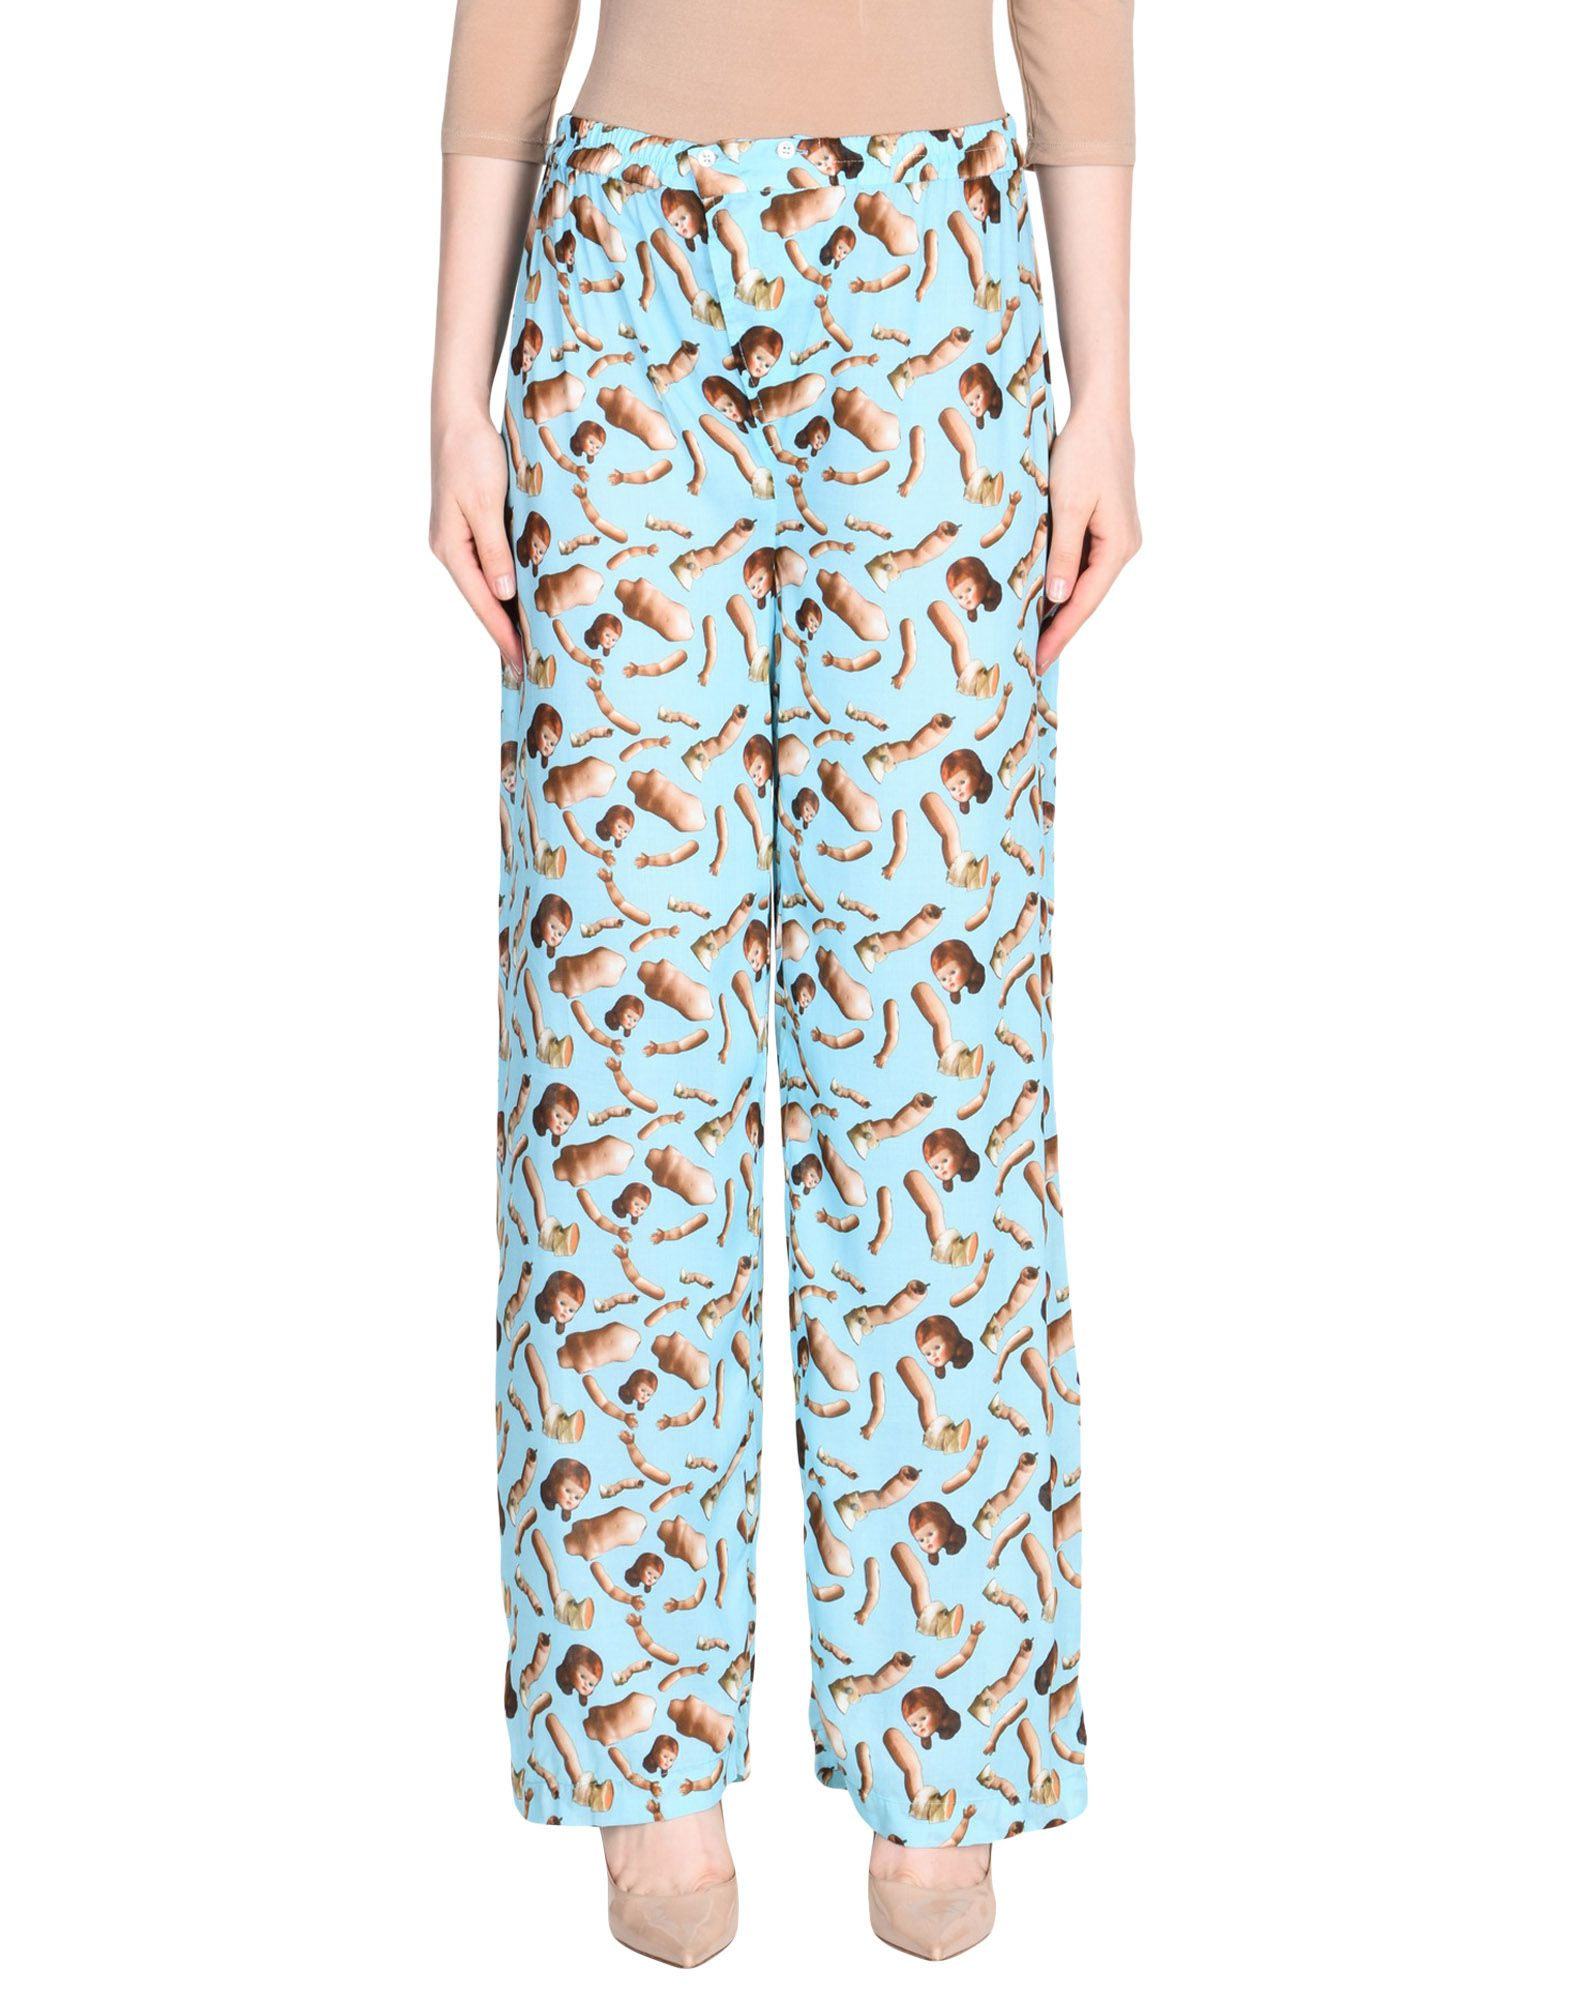 GIORGIA FIORE Casual Pants in Turquoise